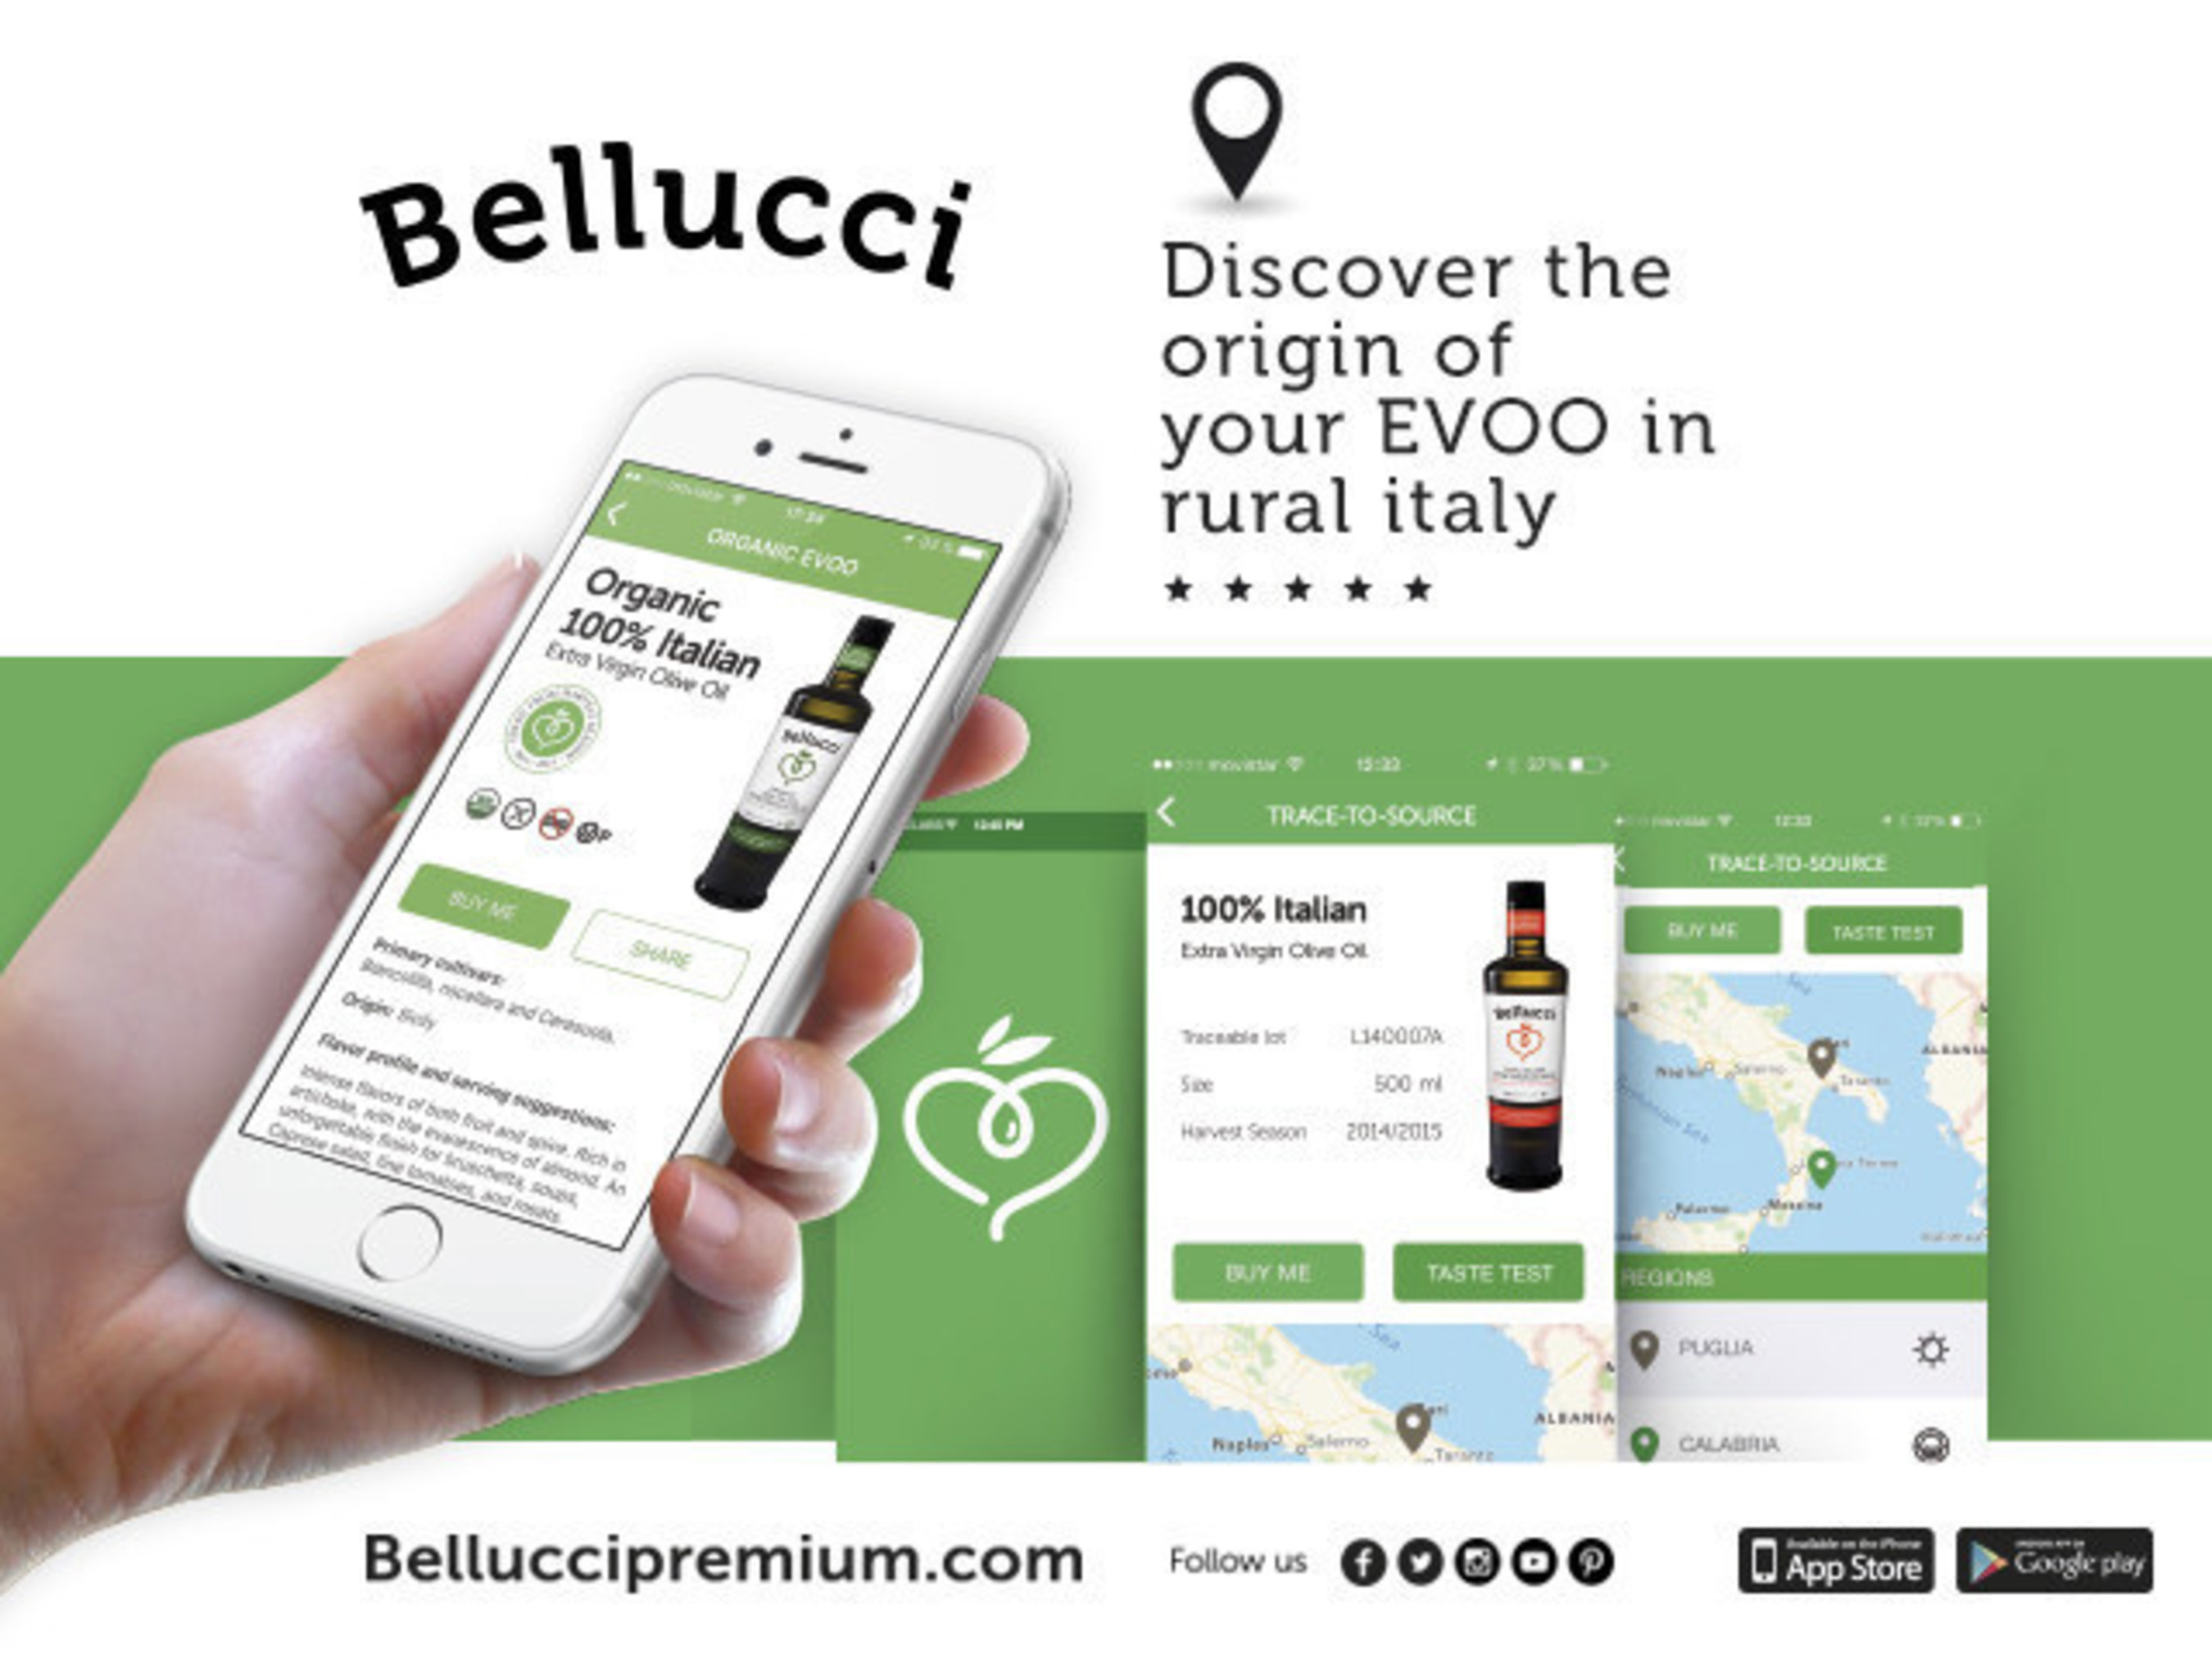 Trace any Bellucci bottle to its precise origin in rural Italy and learn to savor the flavor that comes from the land beneath the trees.